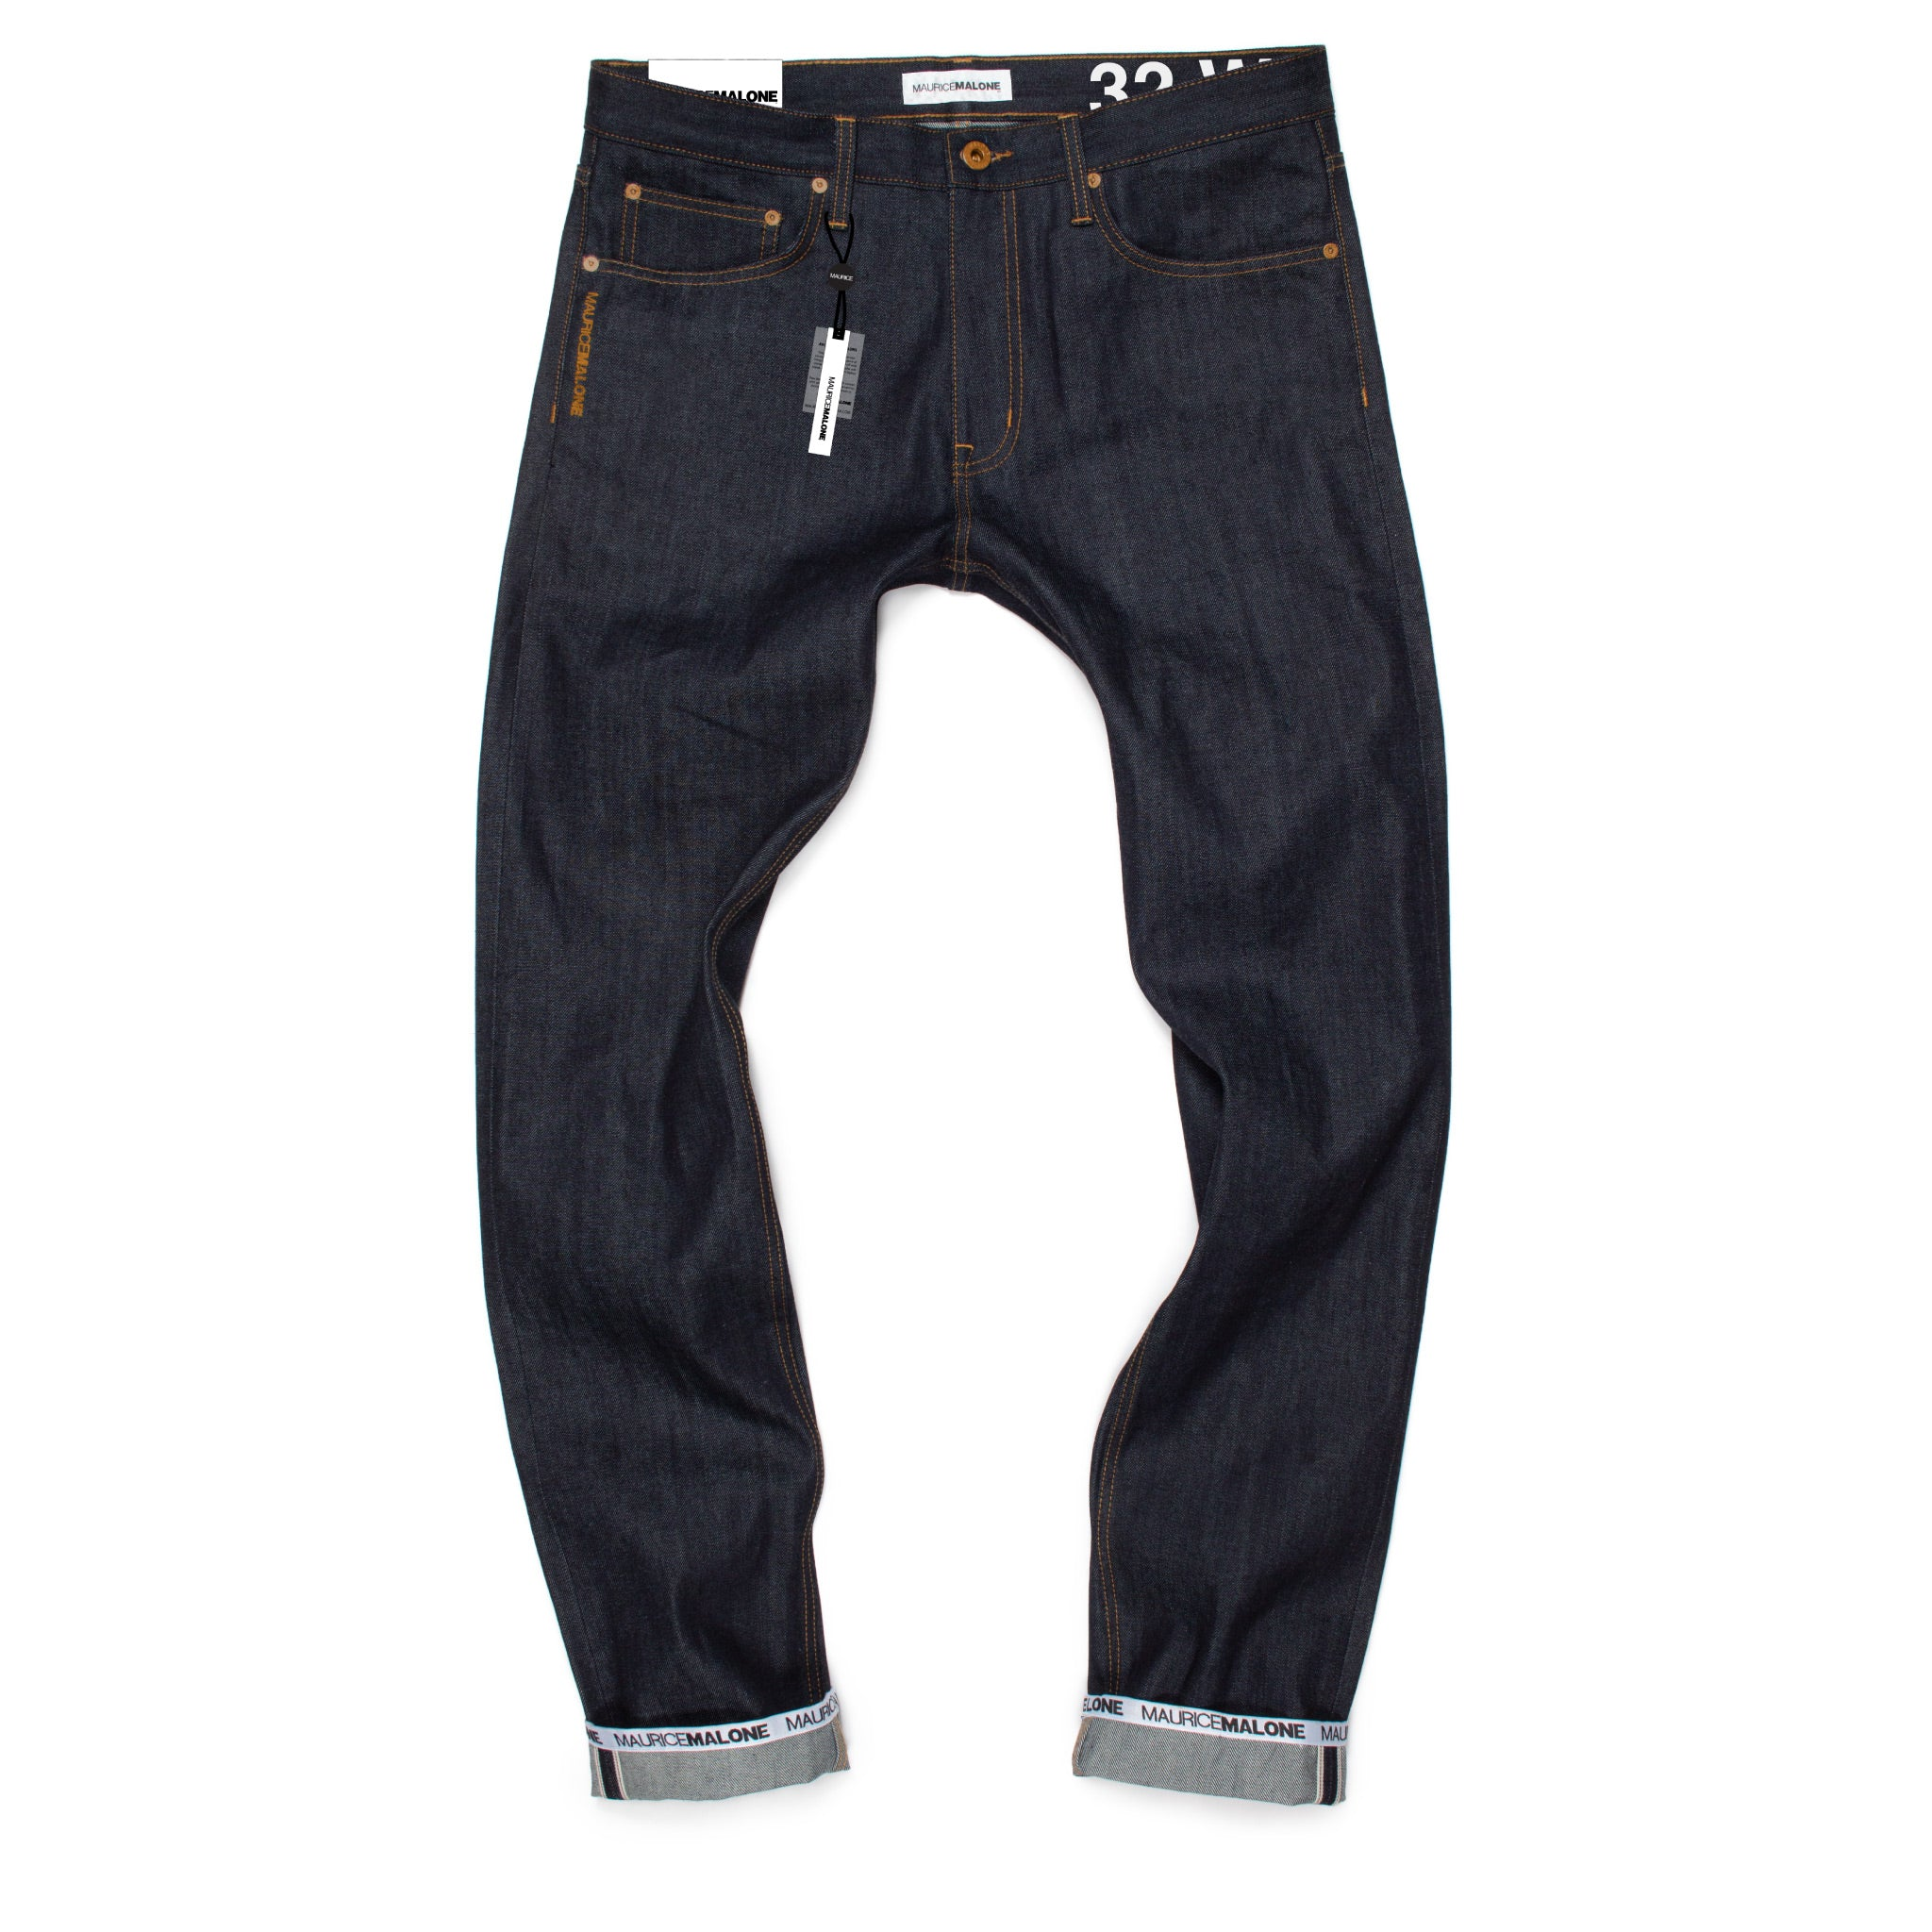 Maurice Malone brand jeans in selvedge raw denim with logo cuff